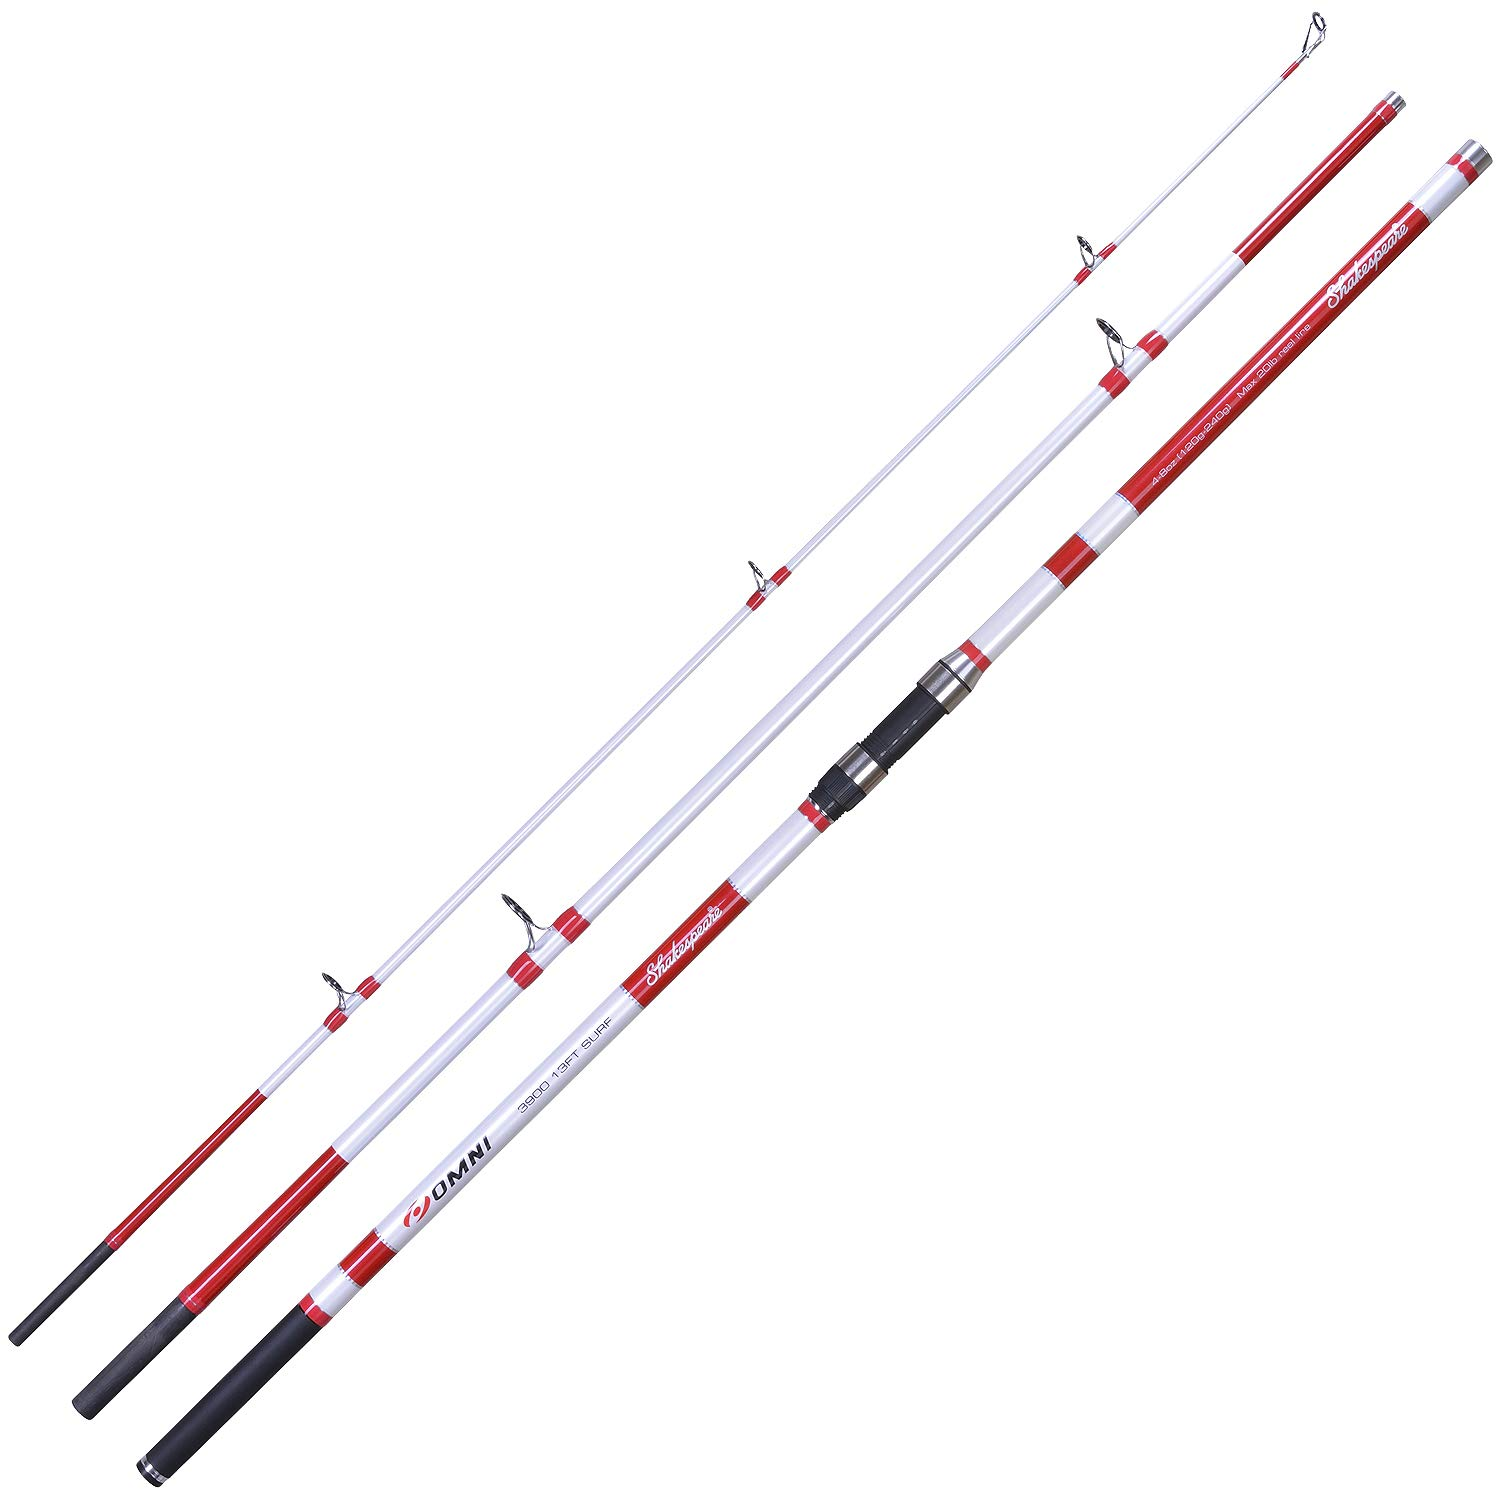 15ft 3pc Sonik Vader XS Shore Rods Beachcaster Surf Sea Fishing Rod NEW 2019